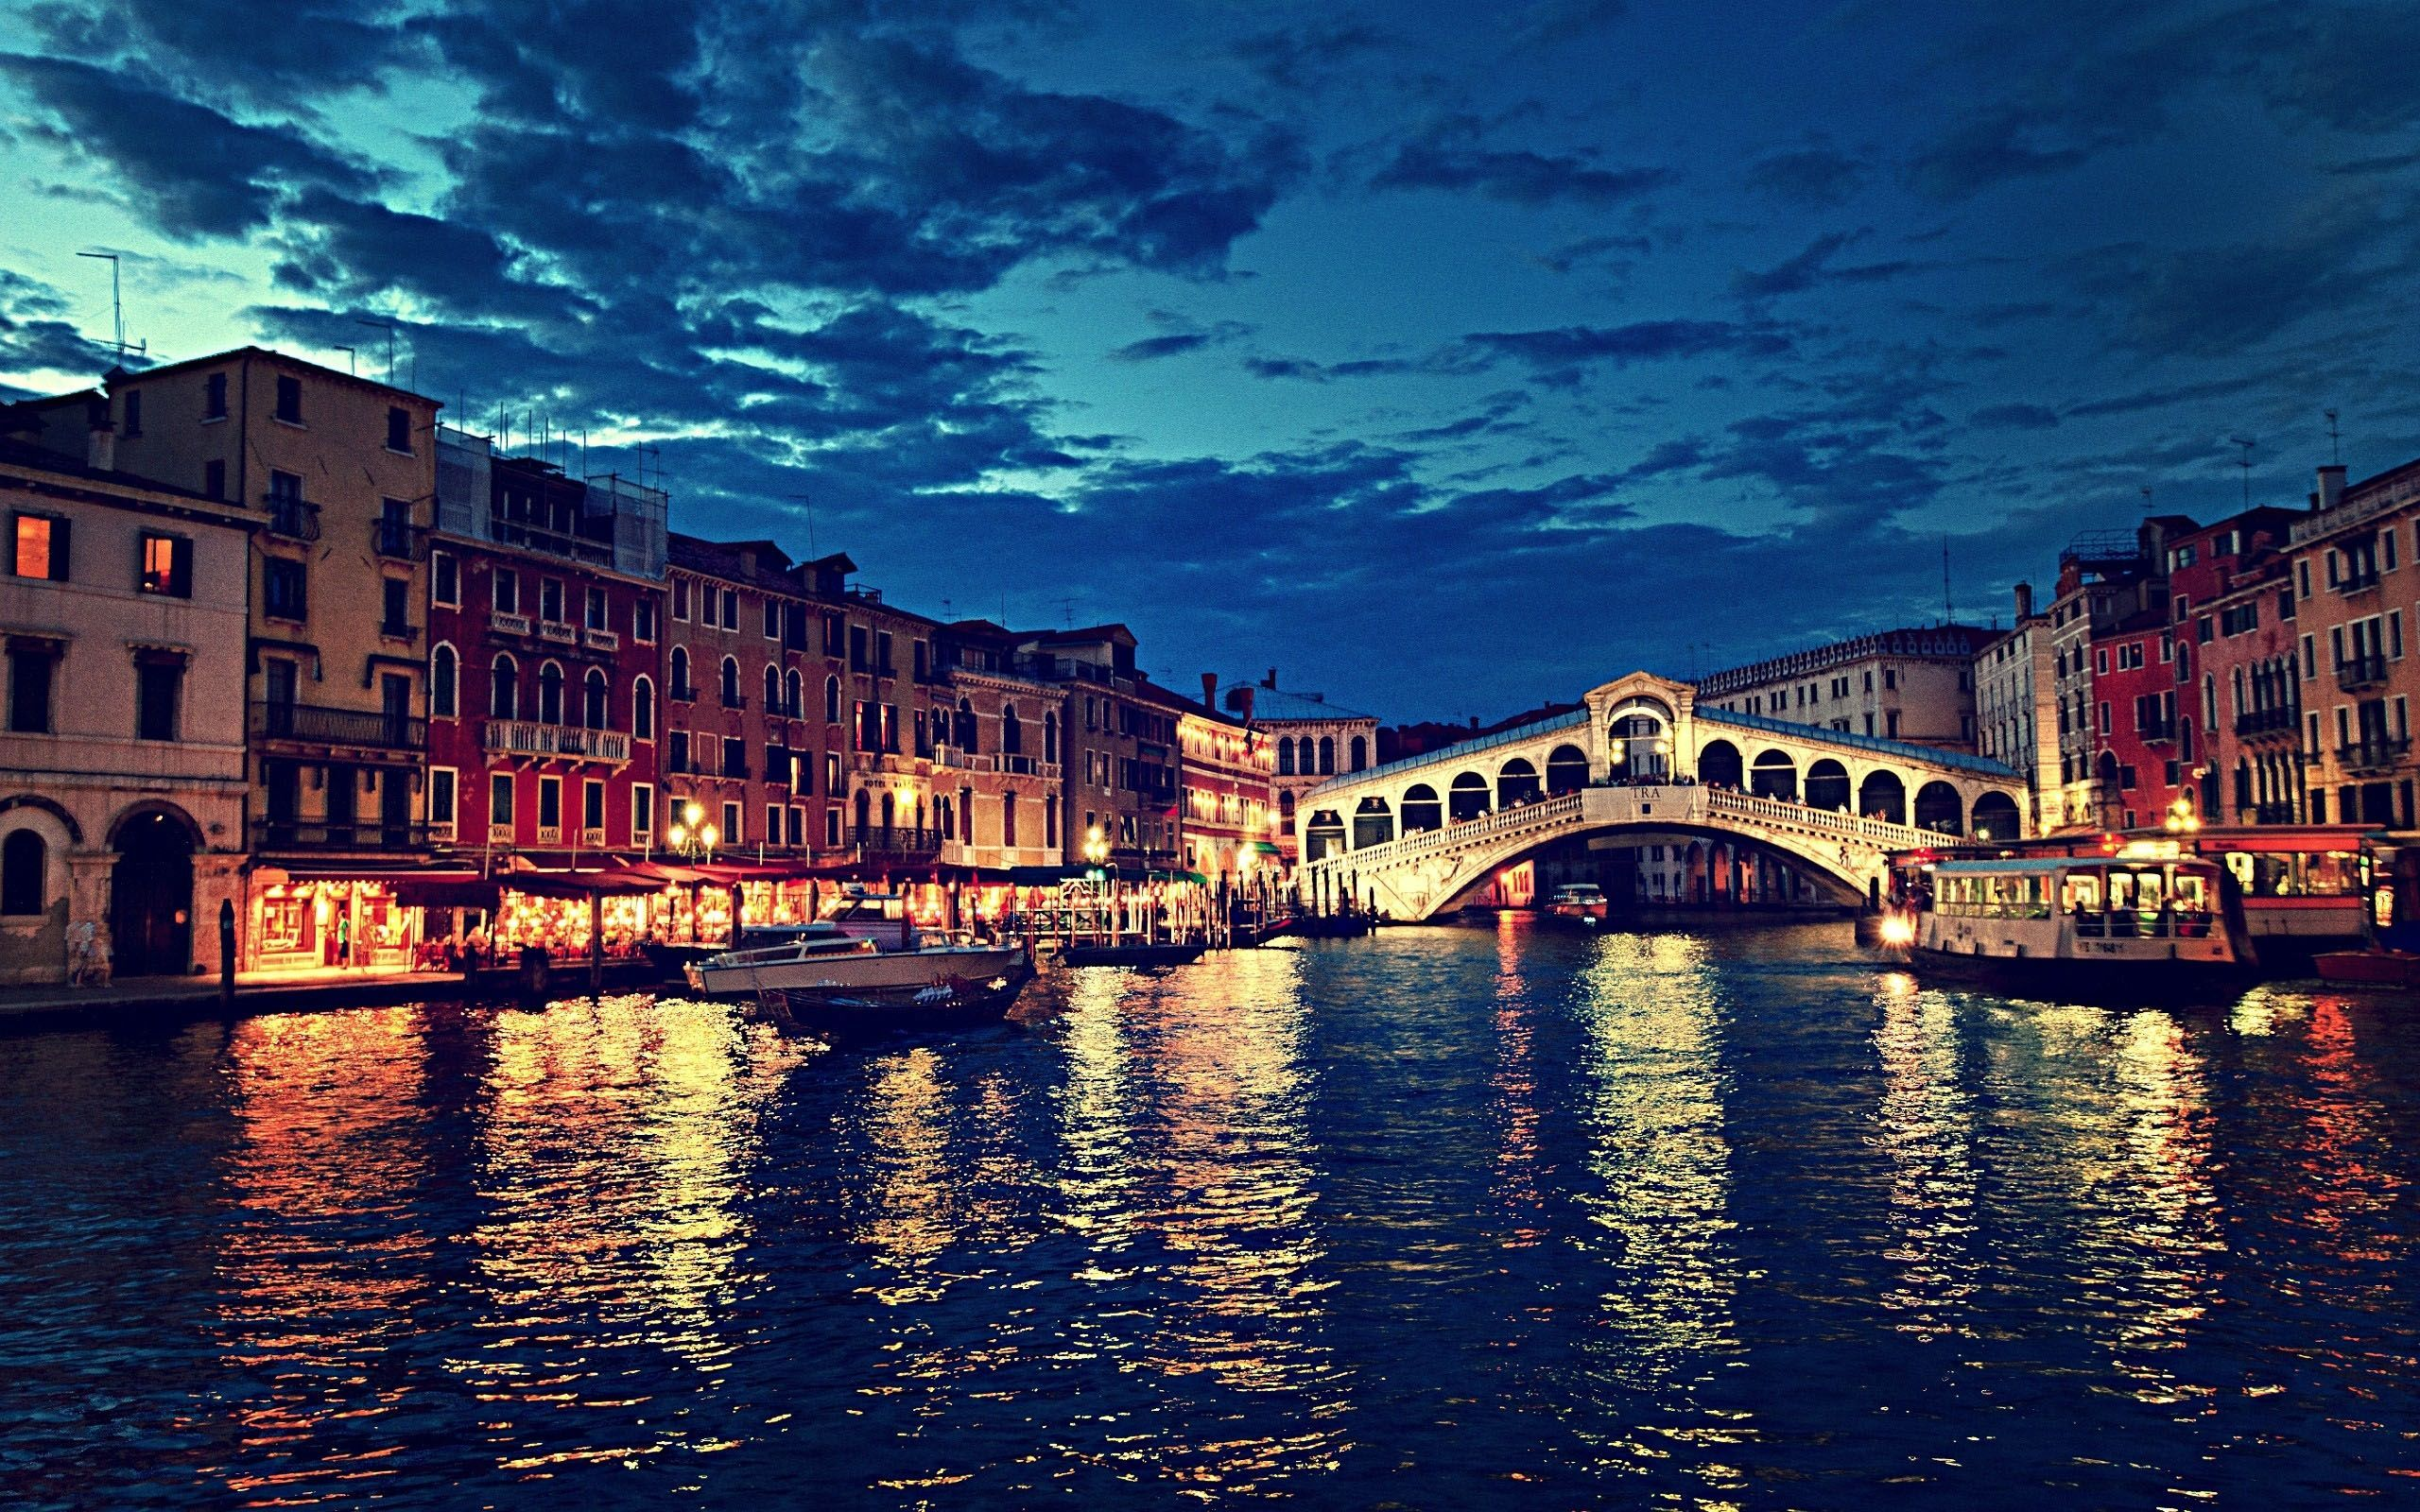 italy images free